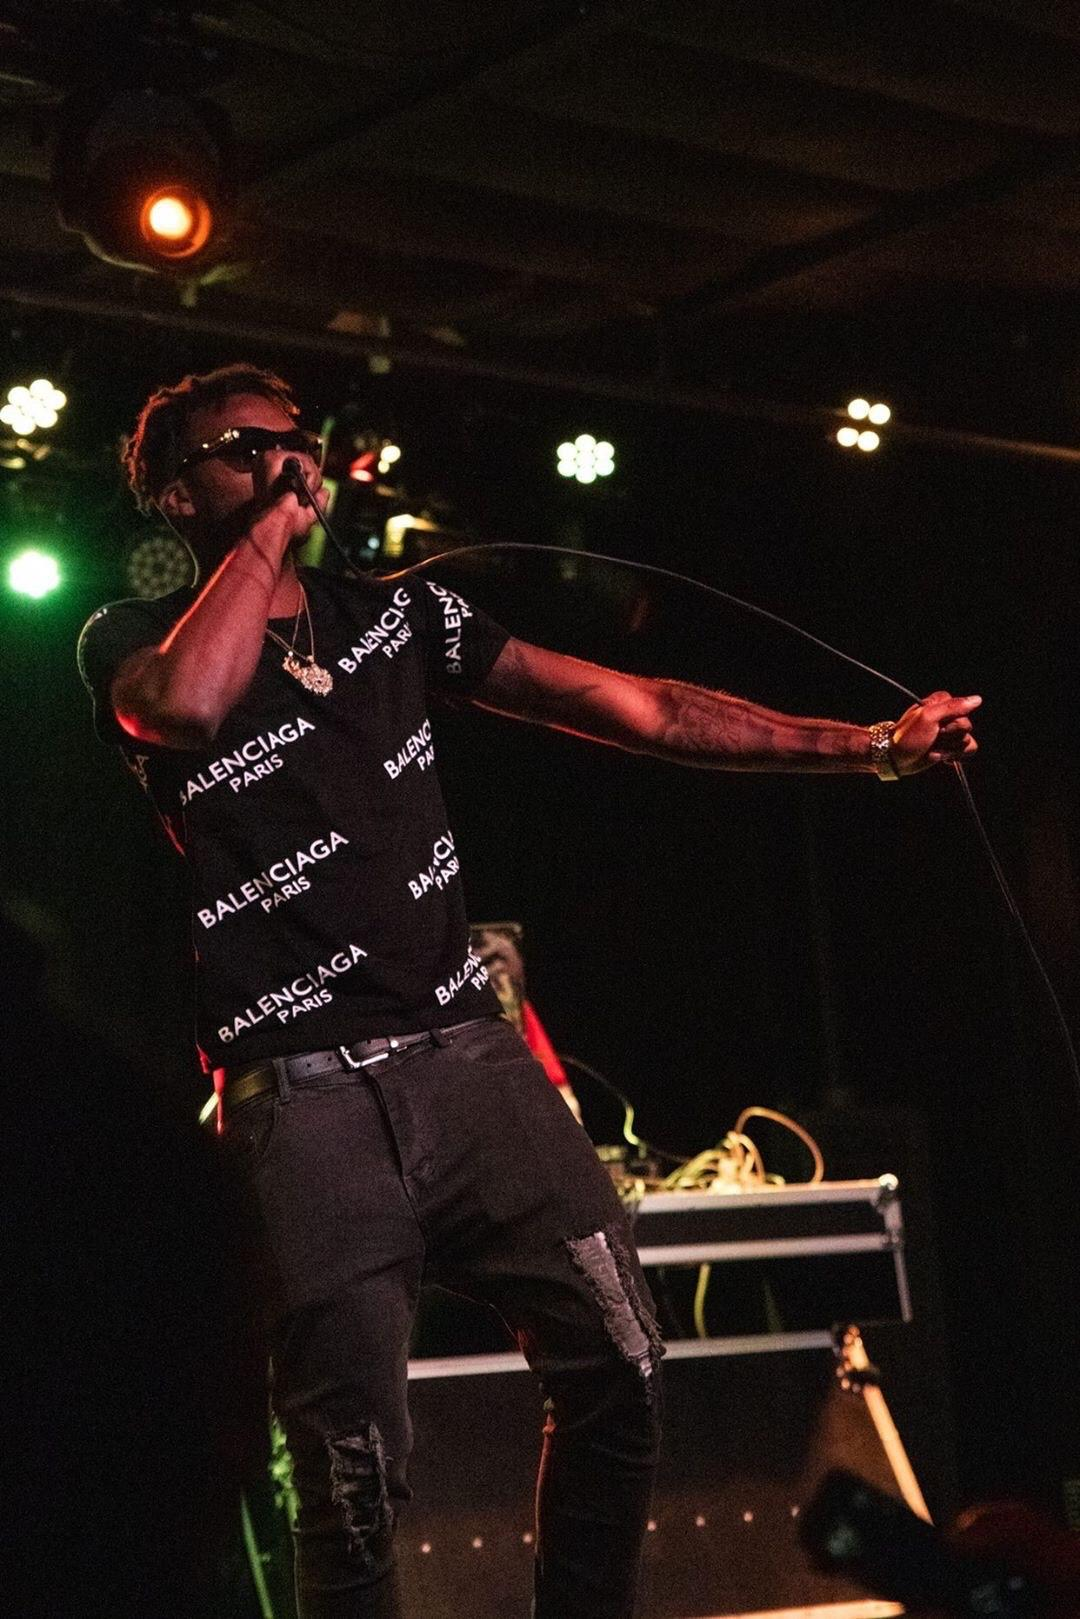 An exclusive interview with music artist D$waylo